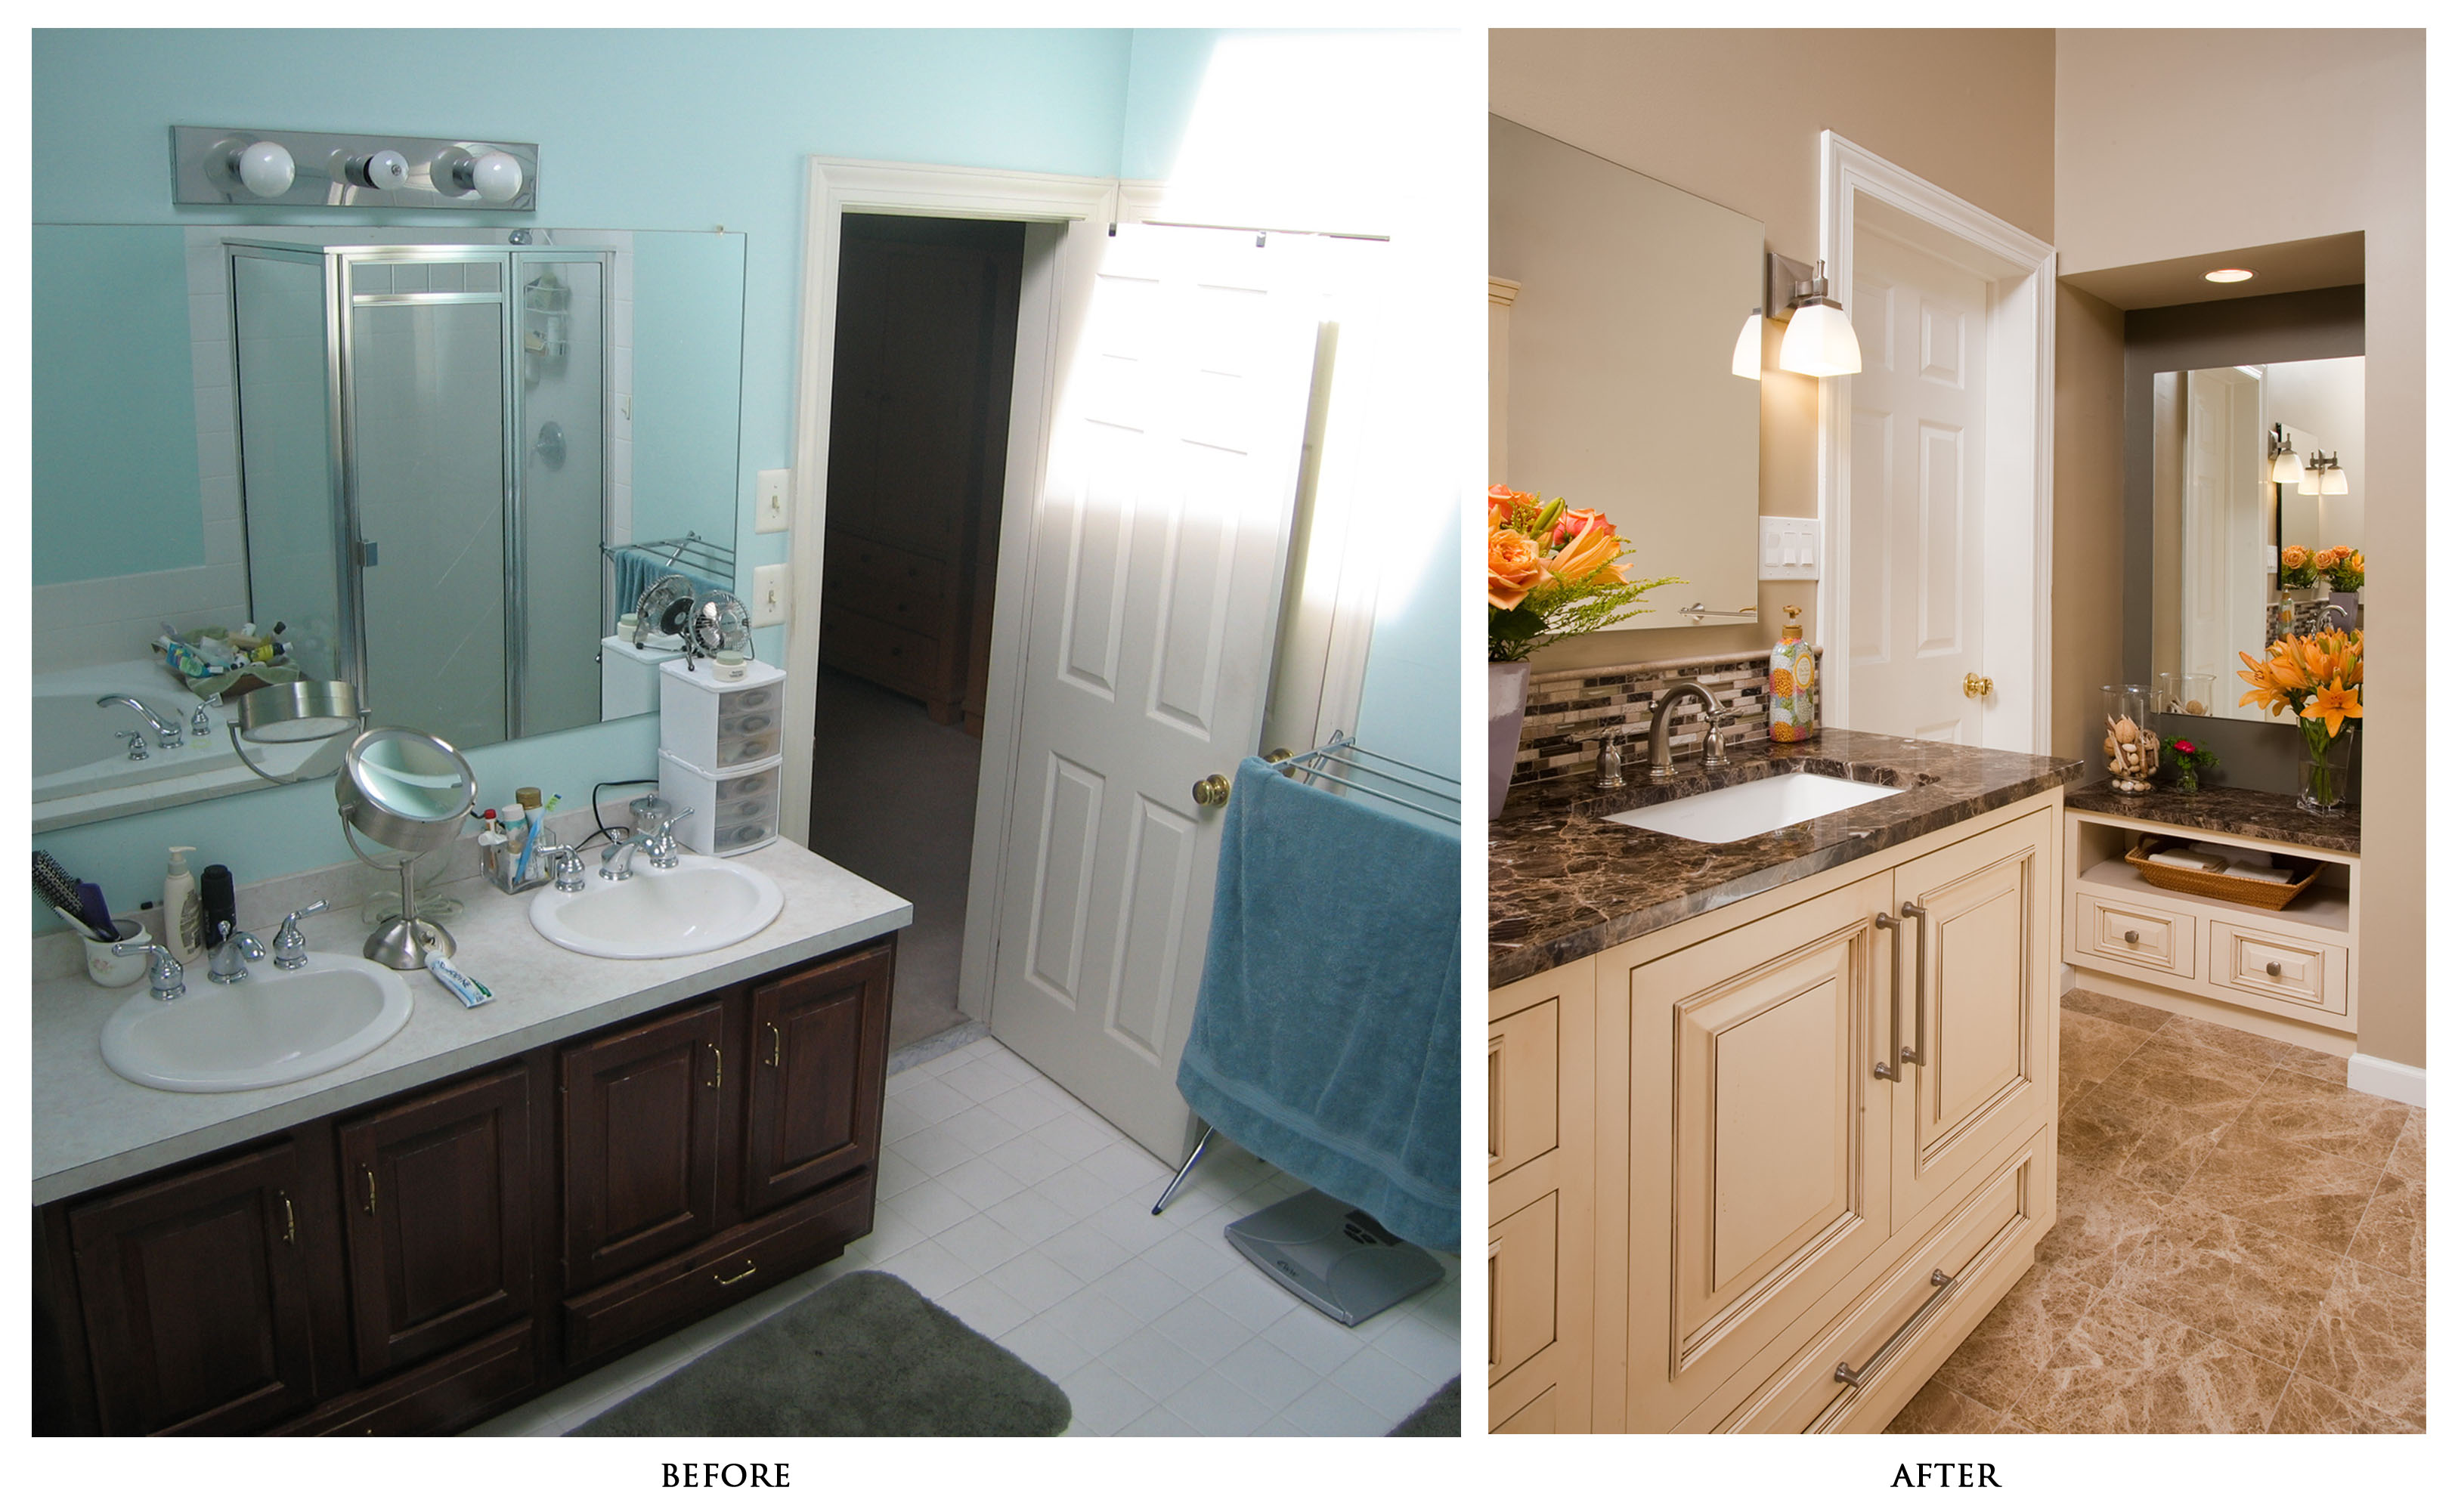 Before and after diy bathroom renovation ideas marvelous diy bathroom remodel photos design inspirations diy bathroom remodel project plan diy bathroom